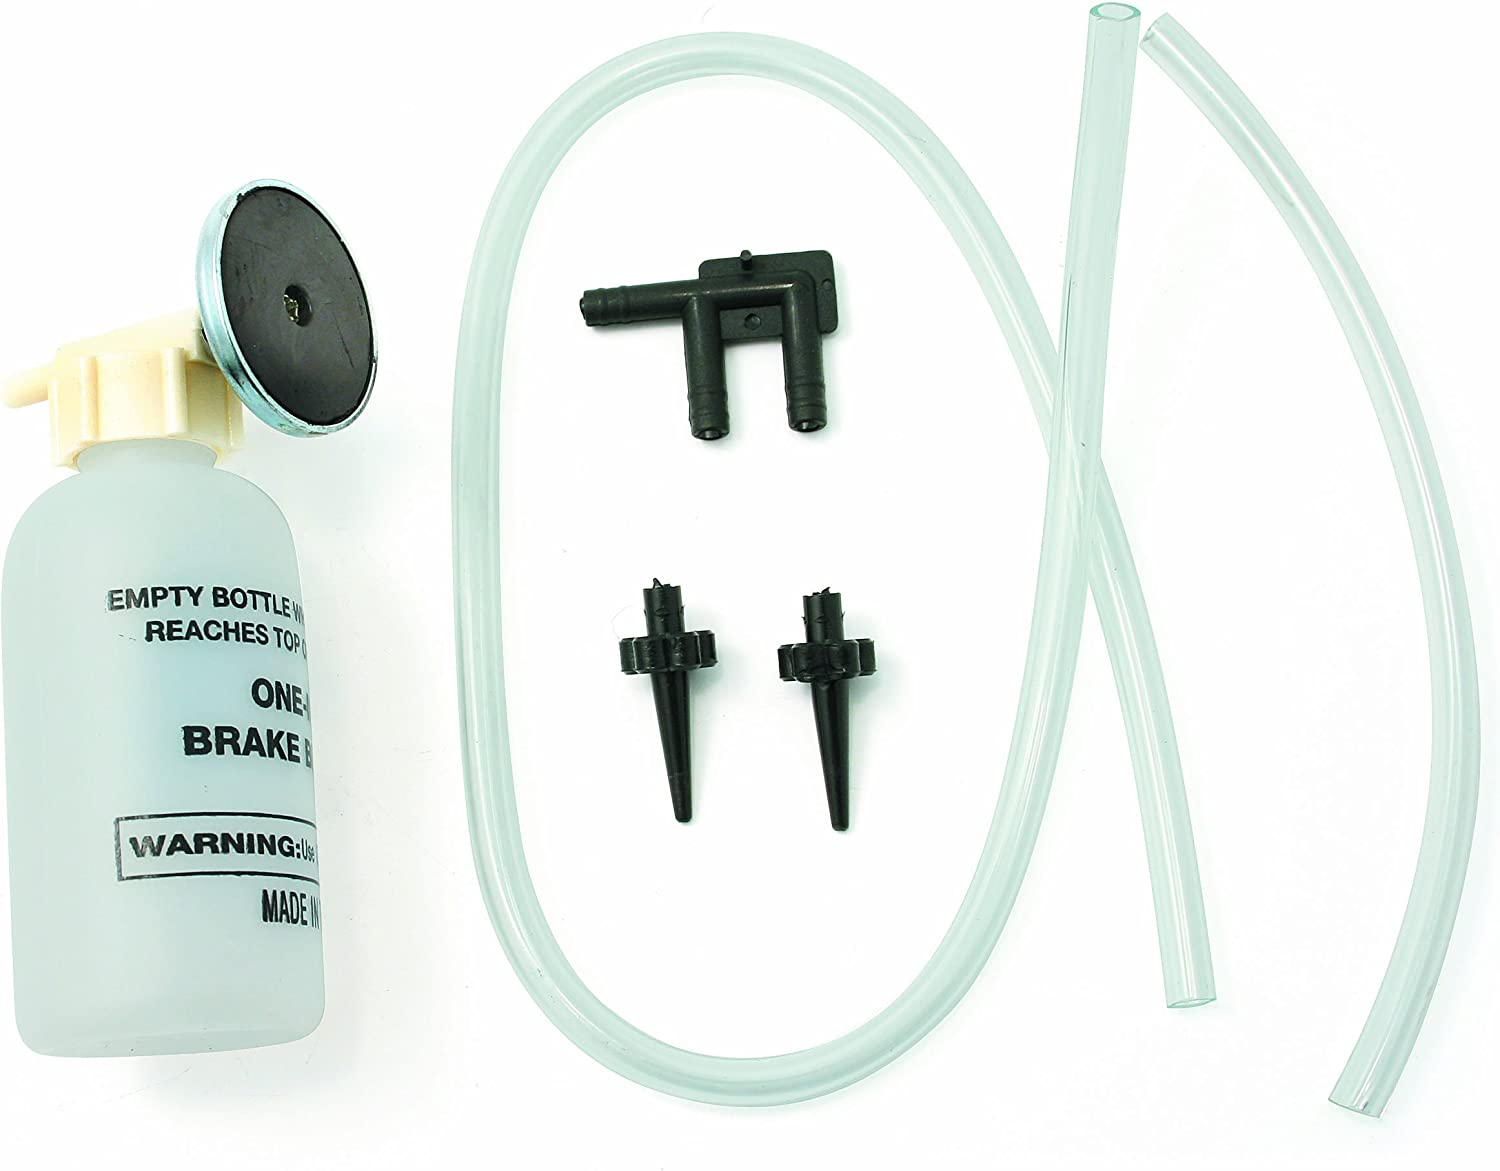 One-Man brake bleeding Kit